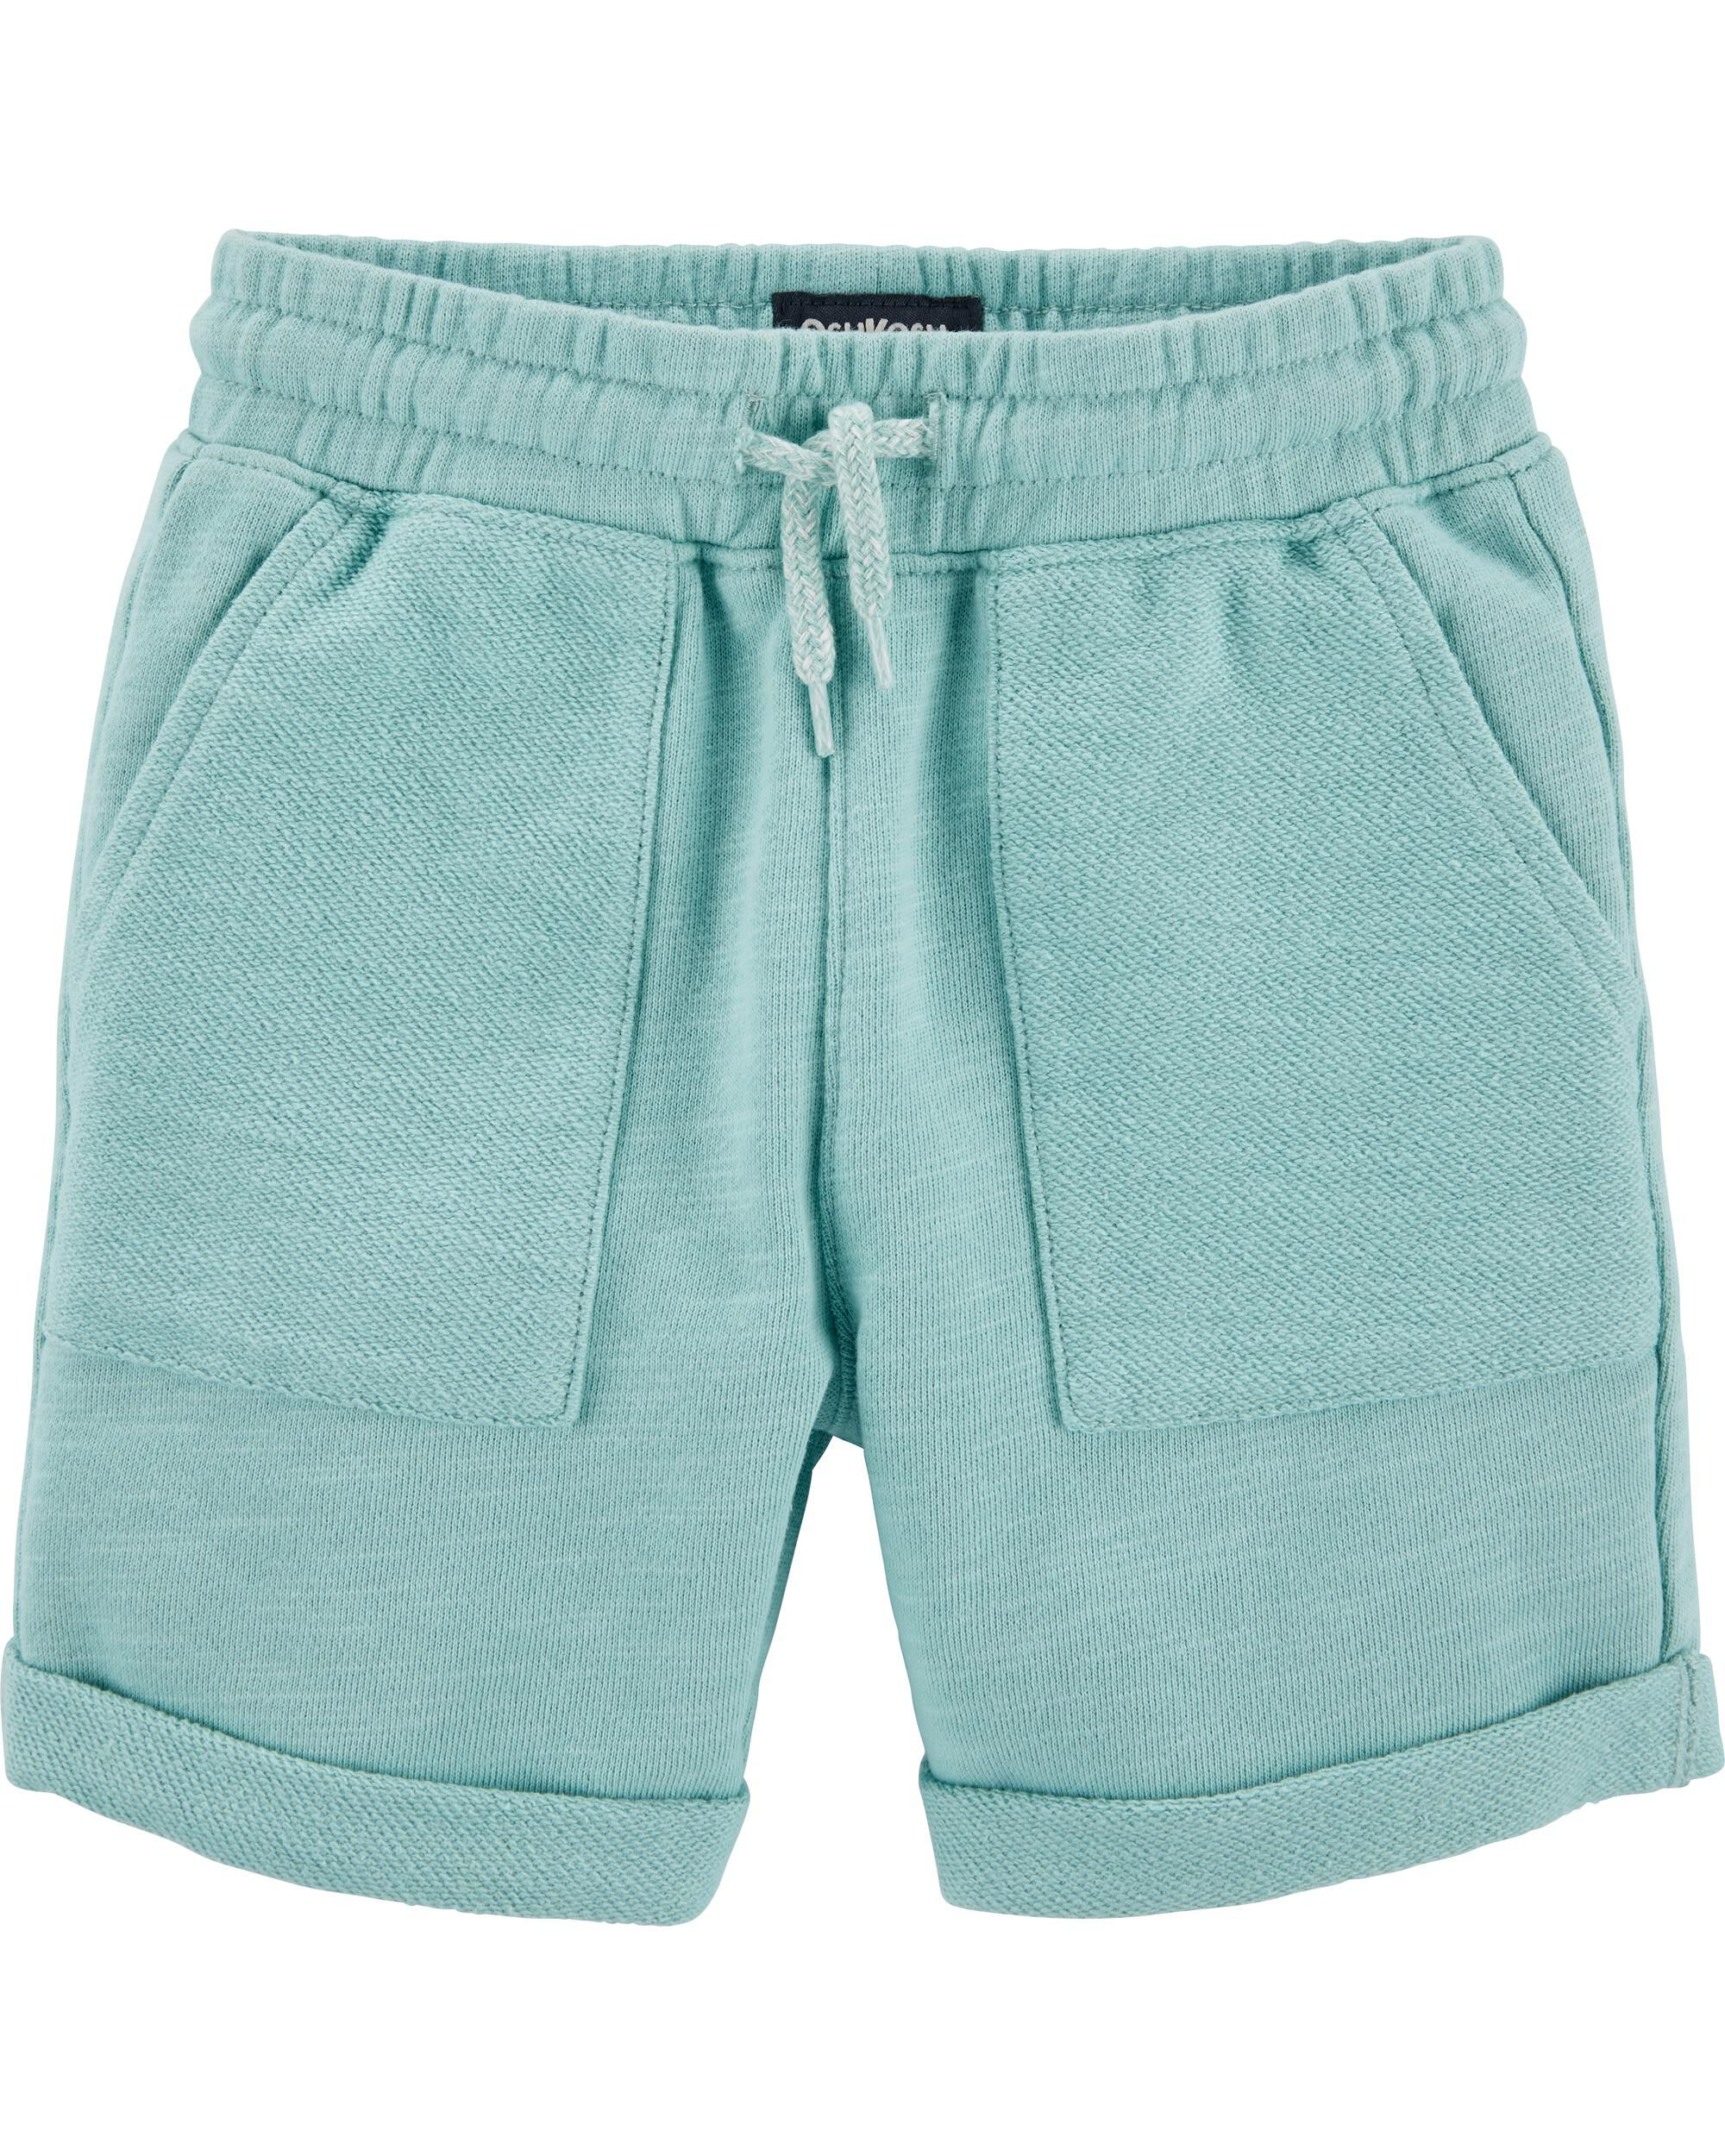 Carters Little Girls French Terry Shorts 2T, Turquoise